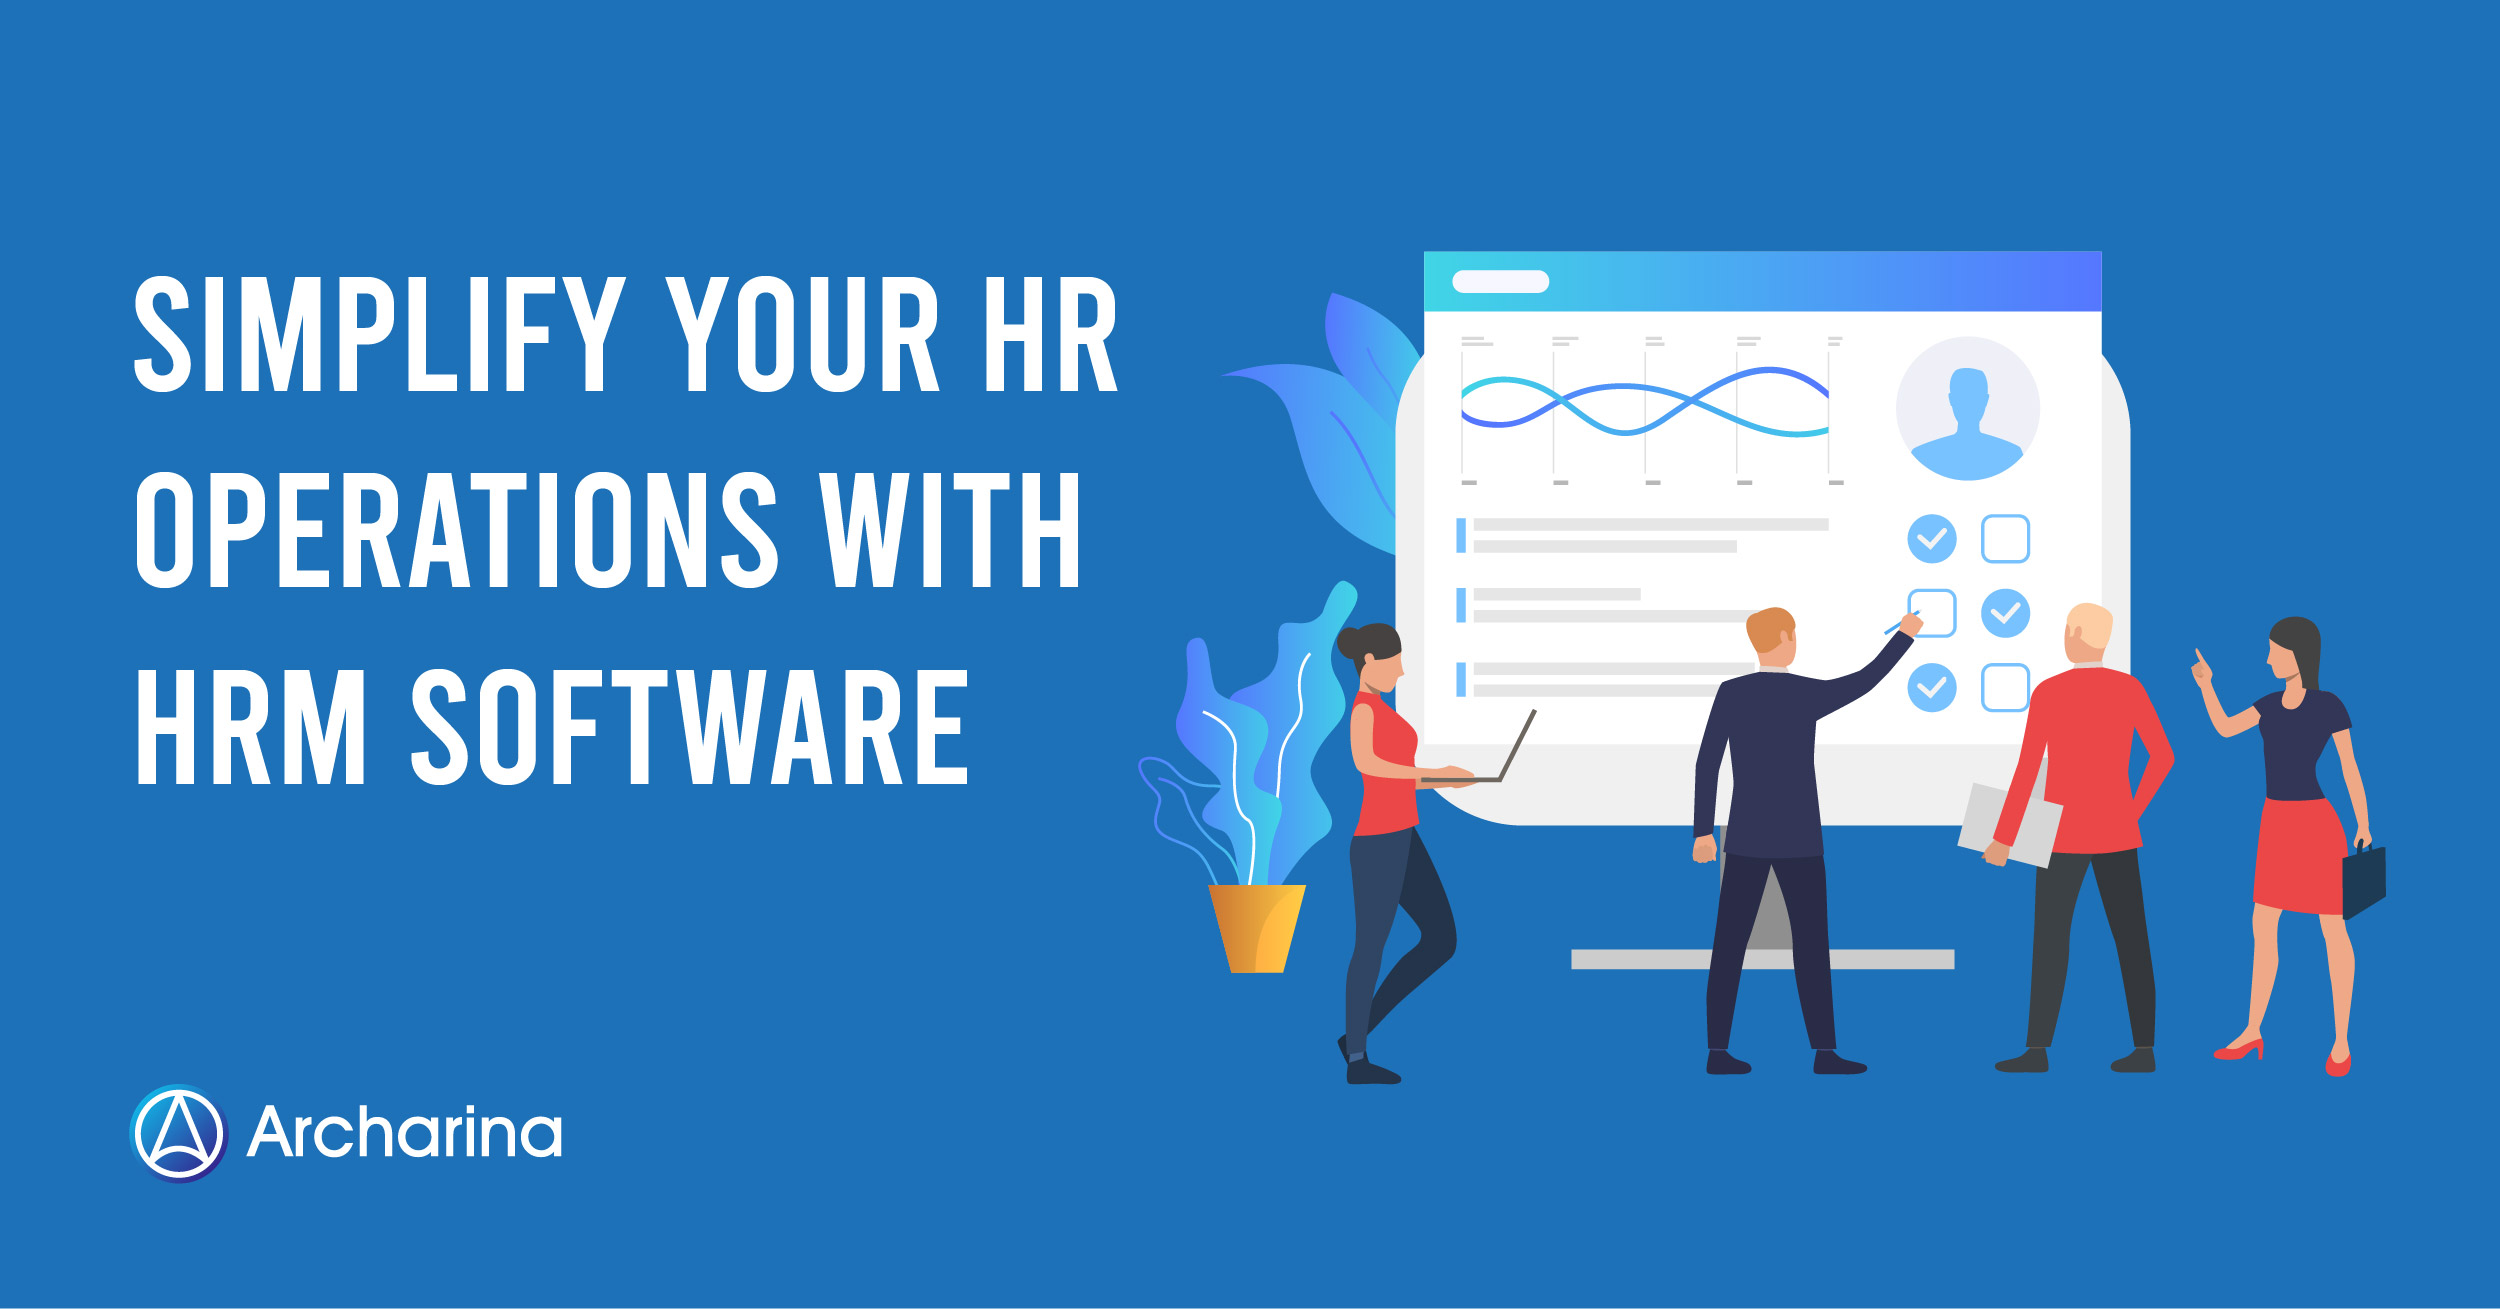 Simplify Your HR Operations with HRM Software